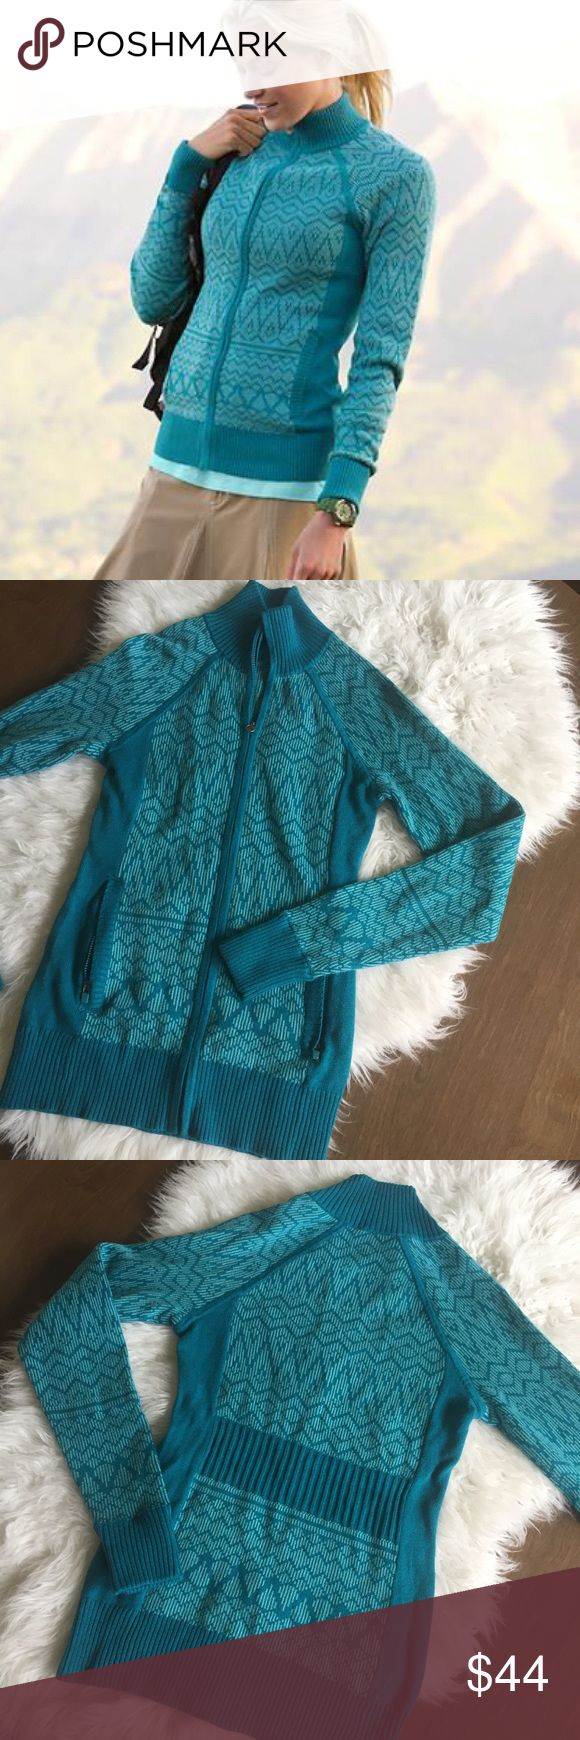 """Athleta NWOT Sky Camp Zip Up Sweater Jacket Teal zip up in a thick stretchy sweater material. New without tags. 💫 Smoke free home. Offers are welcome though the """"offer"""" button. No negotiations in the comments. No trades/holds/modeling requests, please. 1 day average ship time. Bundle multiple items for a discount and only pay for shipping once! Athleta Jackets & Coats"""